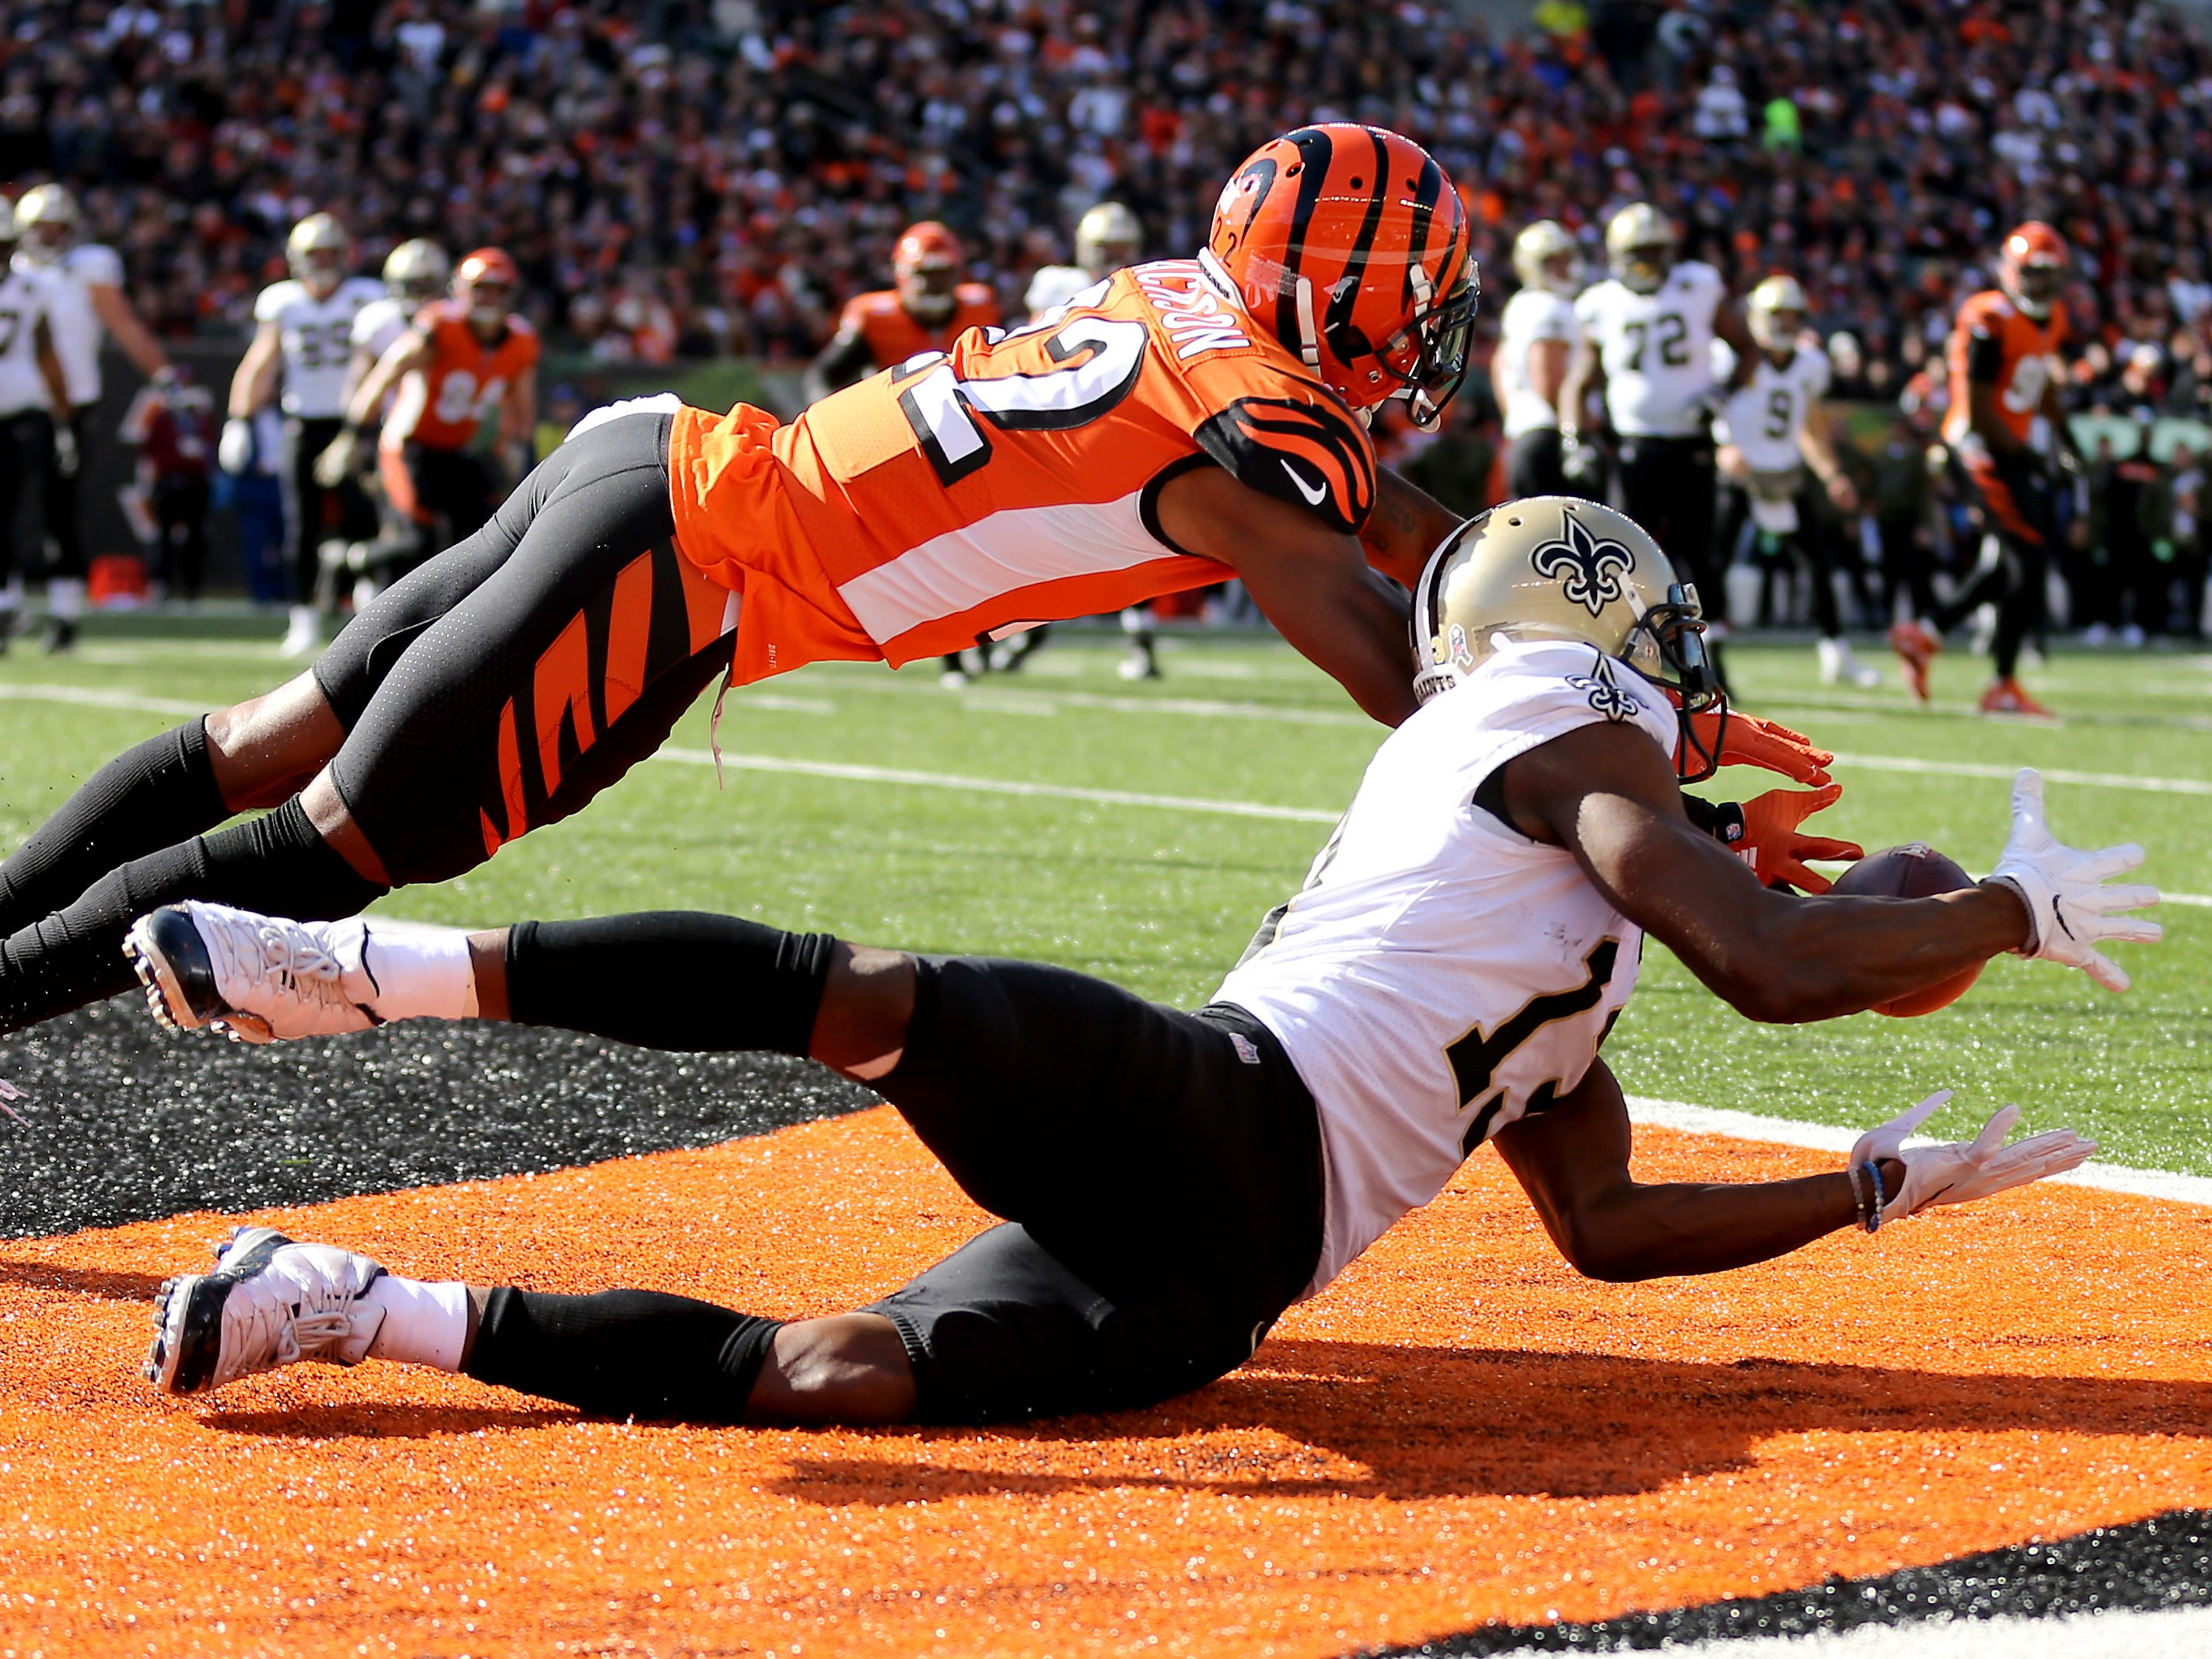 New Orleans Saints wide receiver Michael Thomas (13) catches a touchdown pass as Cincinnati Bengals cornerback William Jackson (22) defends in the first quarter of a Week 10 NFL game between the New Orleans Saints and the Cincinnati Bengals, Sunday, Nov. 11, 2018, at Paul Brown Stadium in Cincinnati.